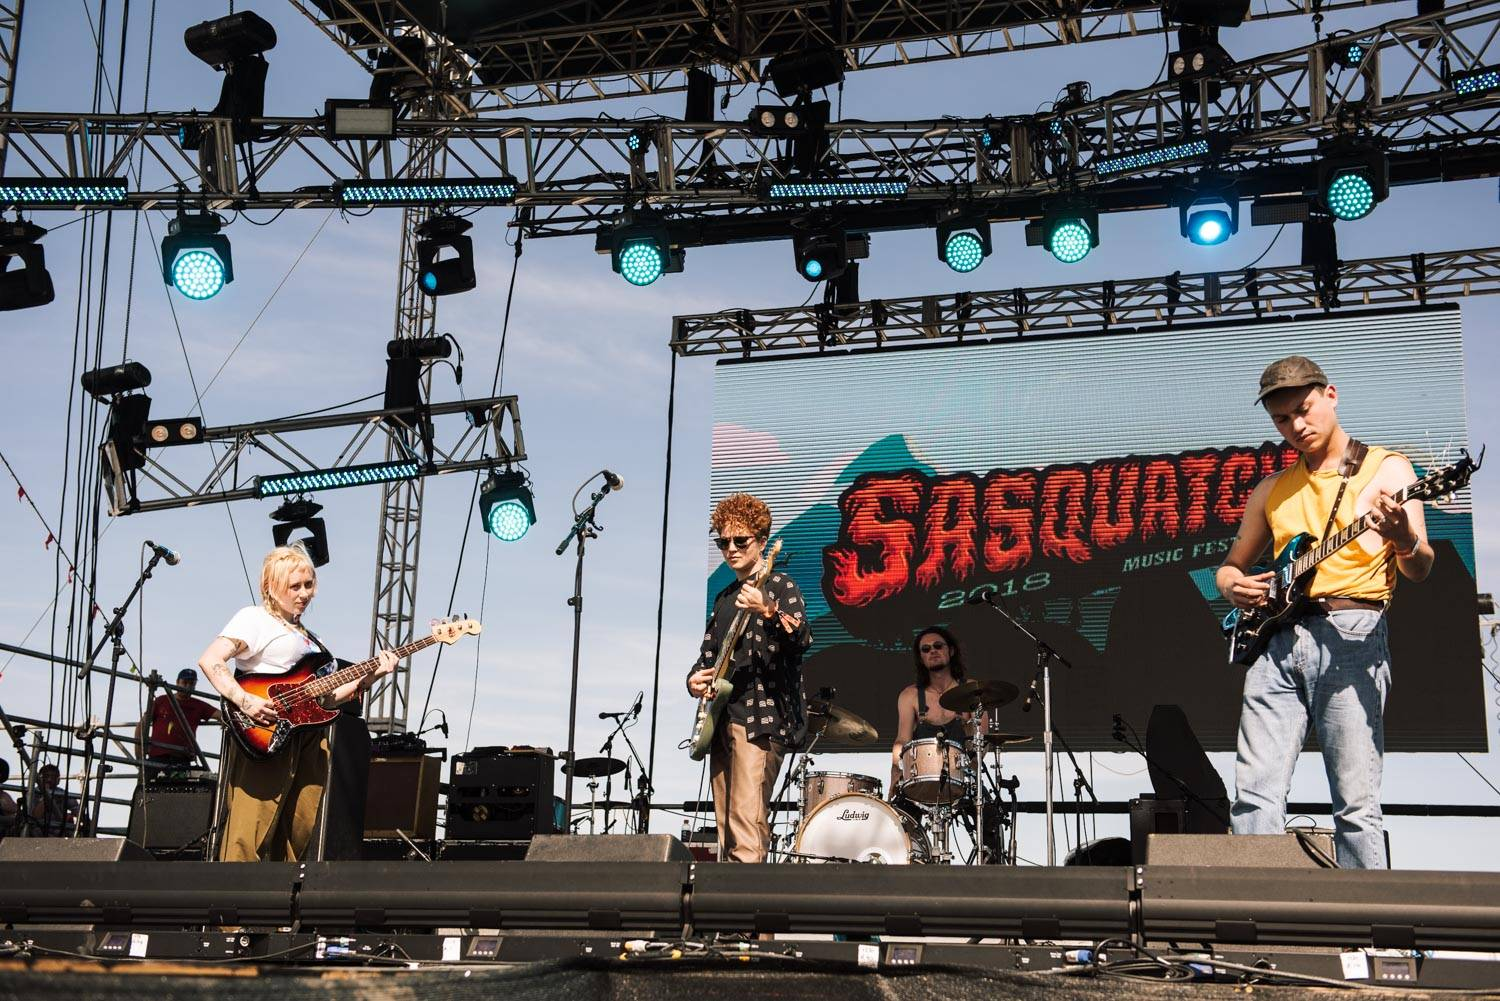 Girlpool at the Sasquatch Music Festival 2018 - Day 1, Gorge WA, May 25 2018. Pavel Boiko photo.